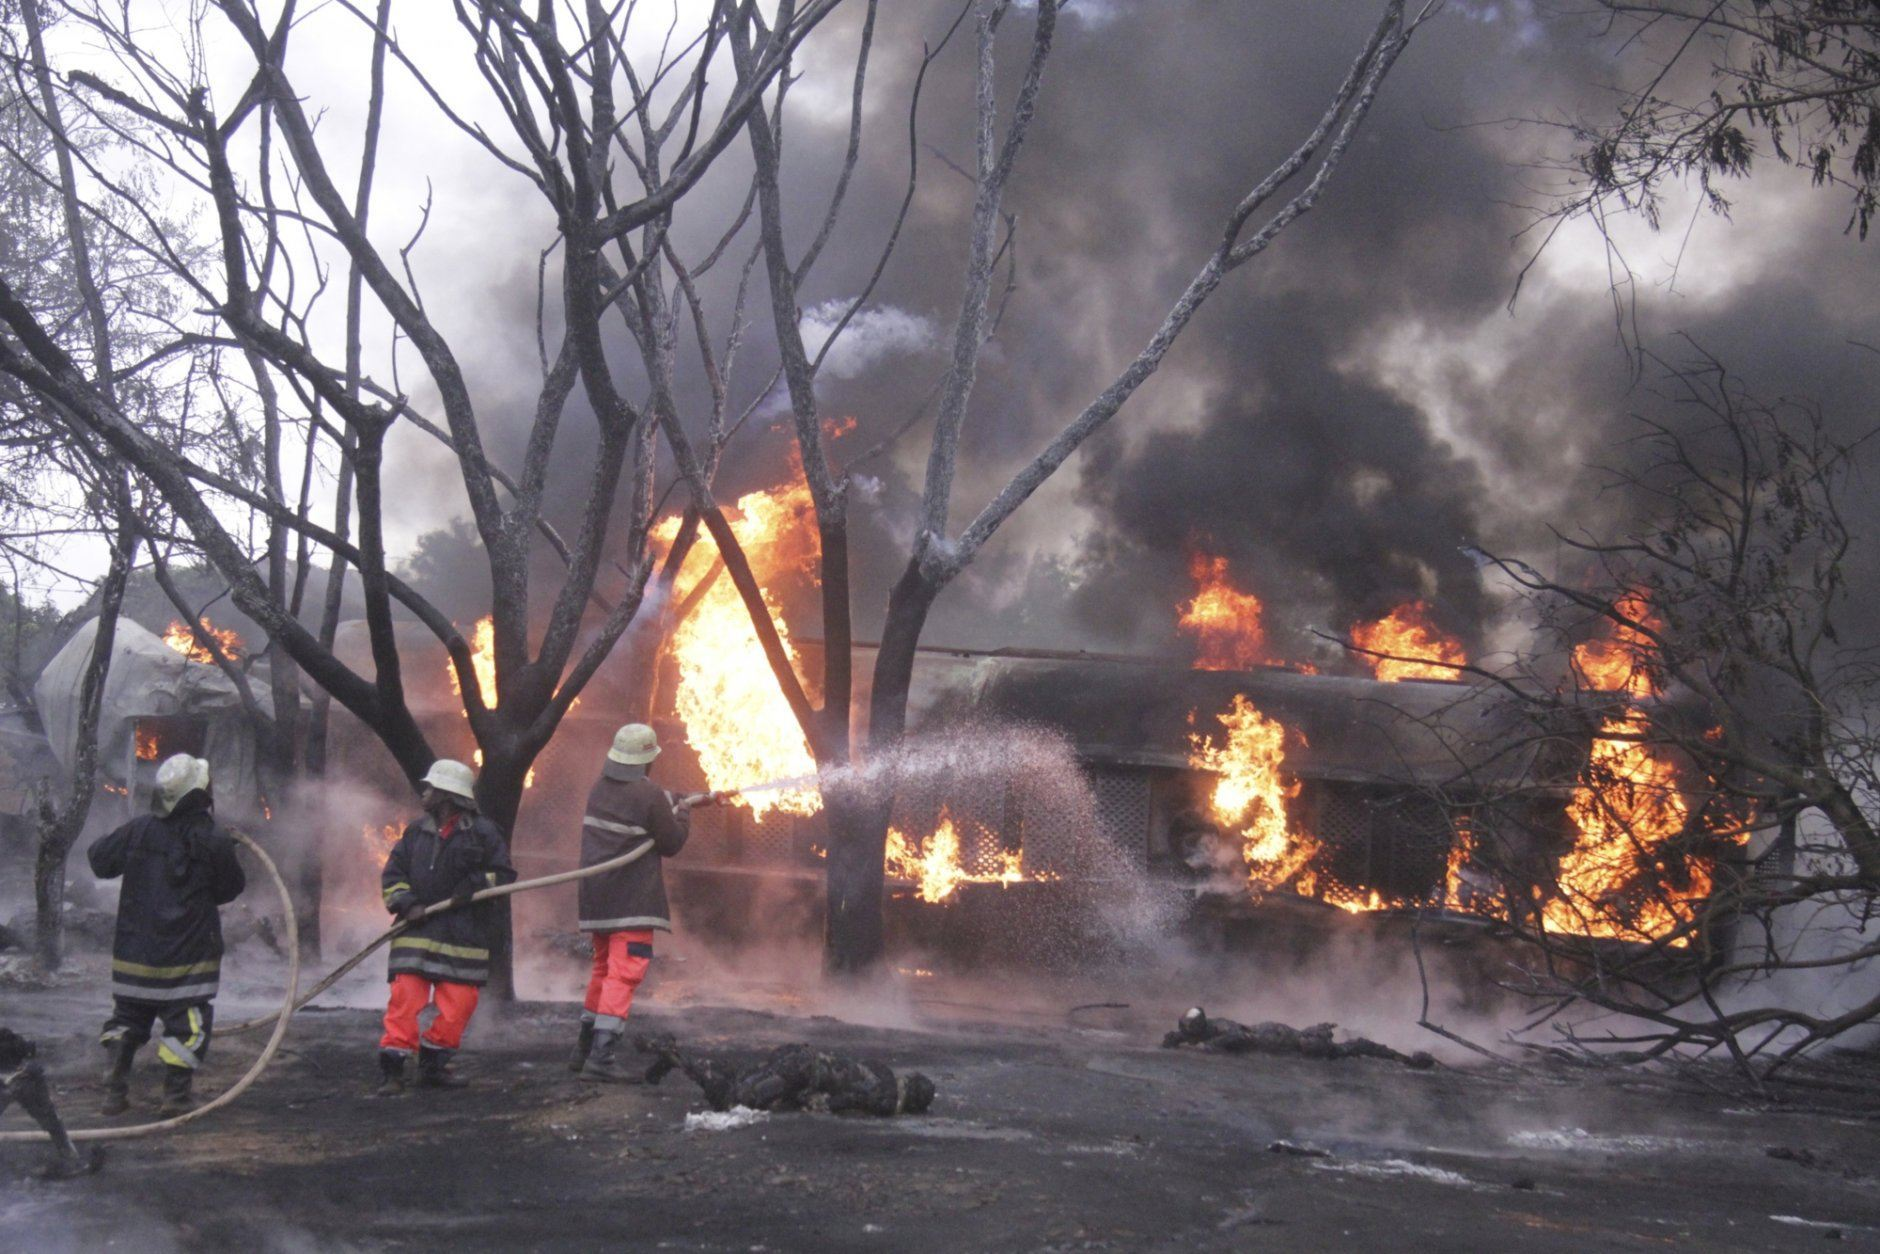 Fire fighters try to extinguish a Patrol Tanker blaze, Saturday, Aug. 10 2019, in Morogoro, Tanzania.   A damaged tanker truck exploded in eastern Tanzania Saturday as people were trying to siphon fuel out of it, killing at least 62, in one of the worst incidents of its kind in the East African country. (AP Photo)